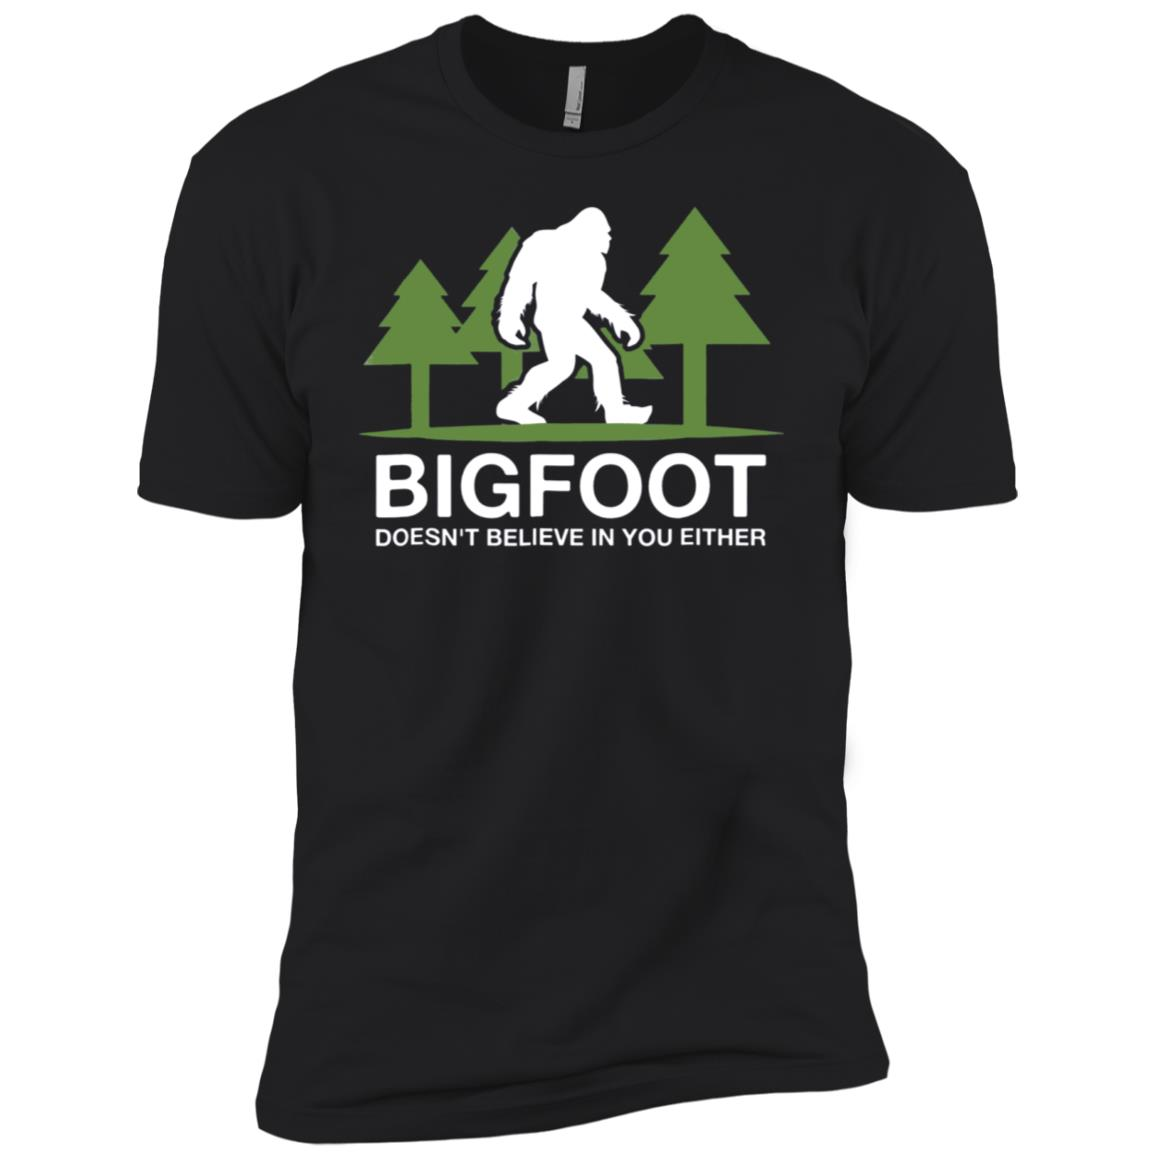 Bigfoot Doesn't Believe In You Either Funny Men Short Sleeve T-Shirt